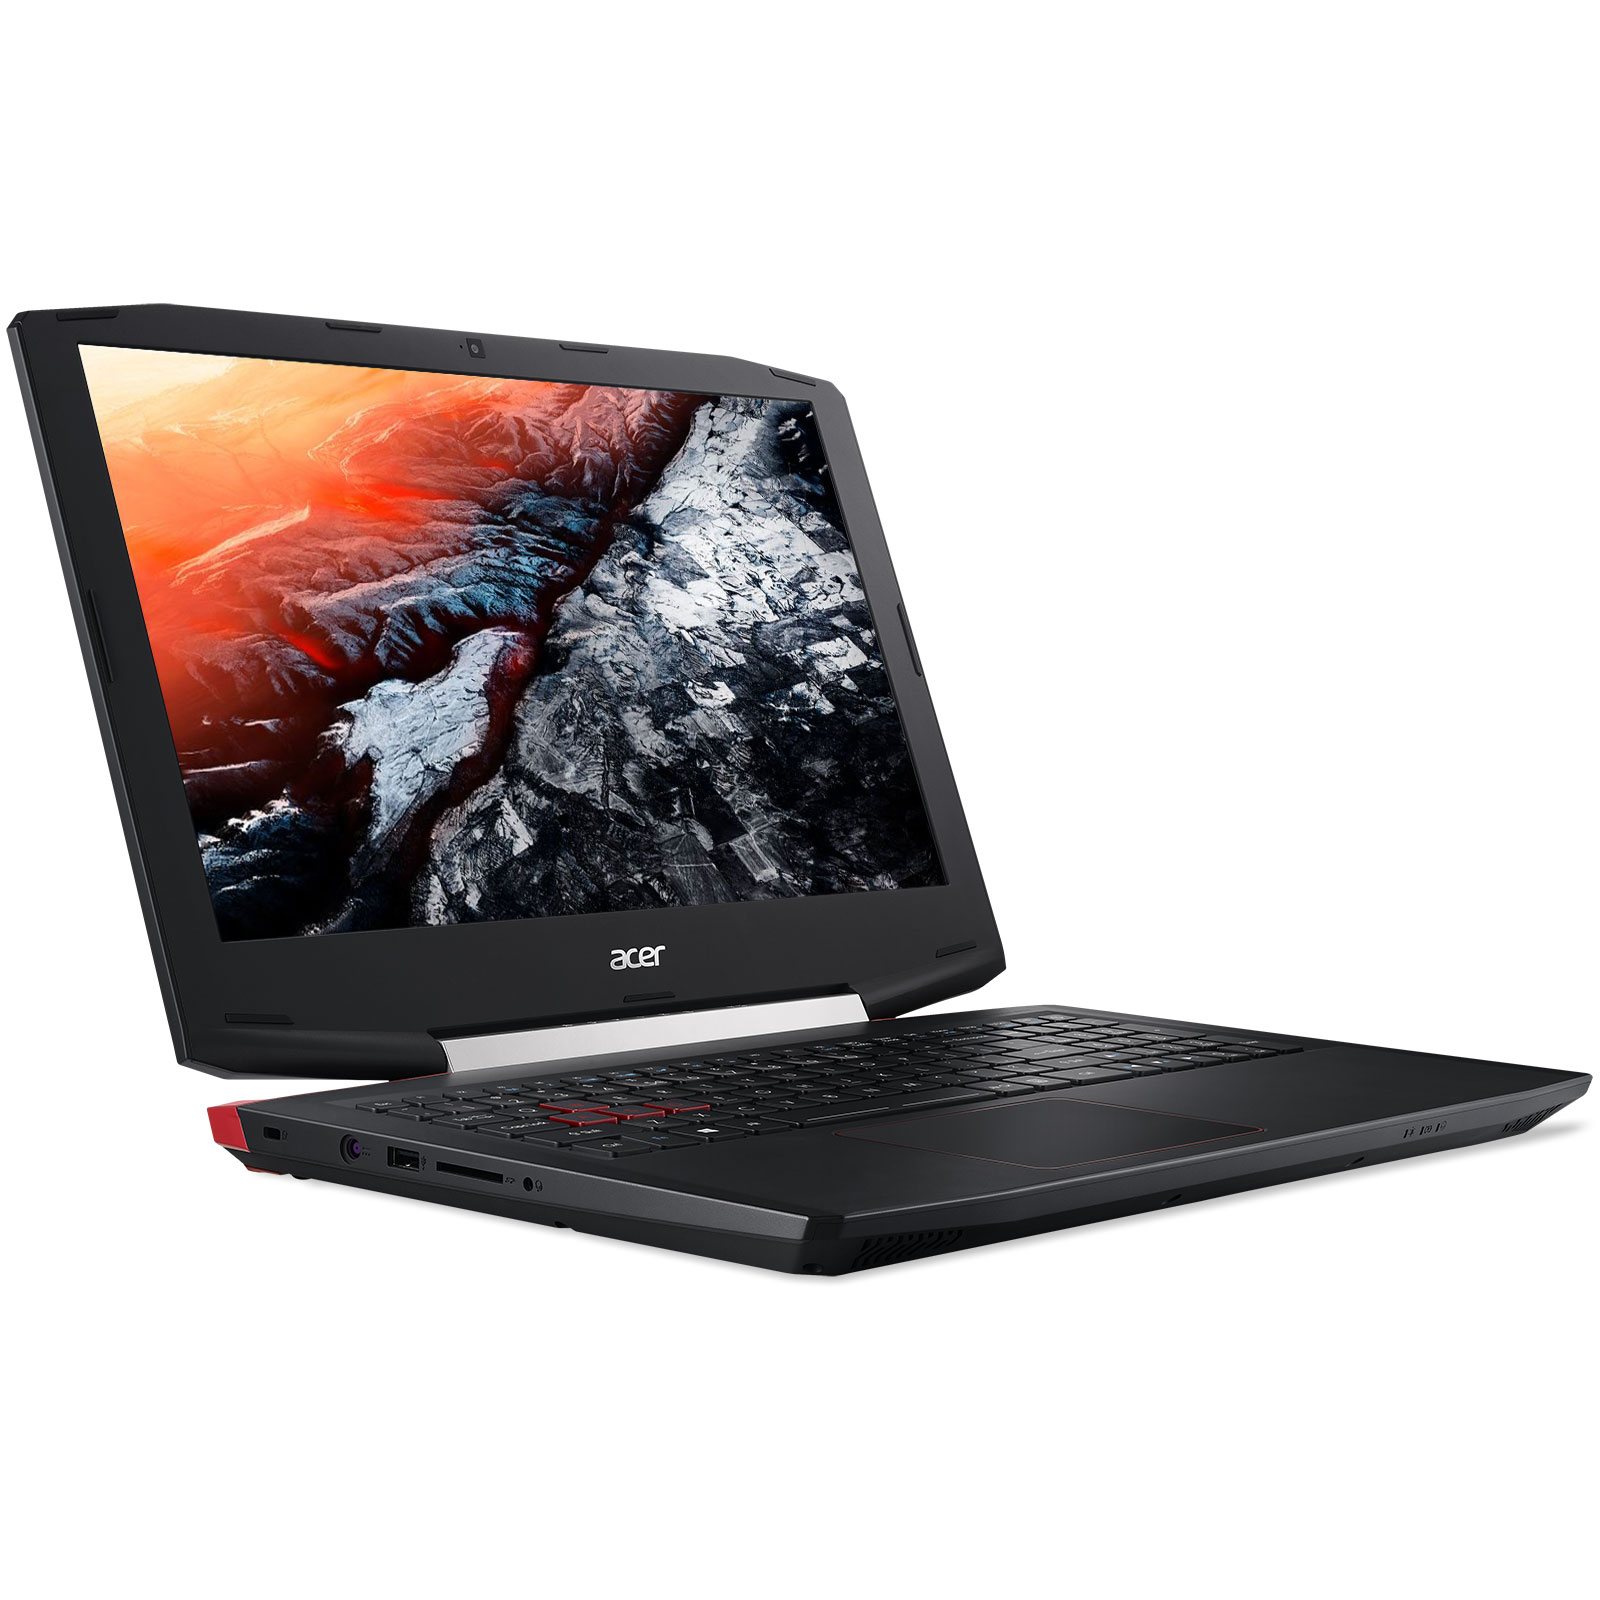 "PC portable Acer Aspire VX15 VX5-591G-5497 Intel Core i5-7300HQ 16 Go SSD 128 Go + HDD 1 To 15.6"" LED Full HD NVIDIA GeForce GTX 1050 4 Go Wi-Fi AC/Bluetooth Webcam Windows 10 Famille 64 bits"